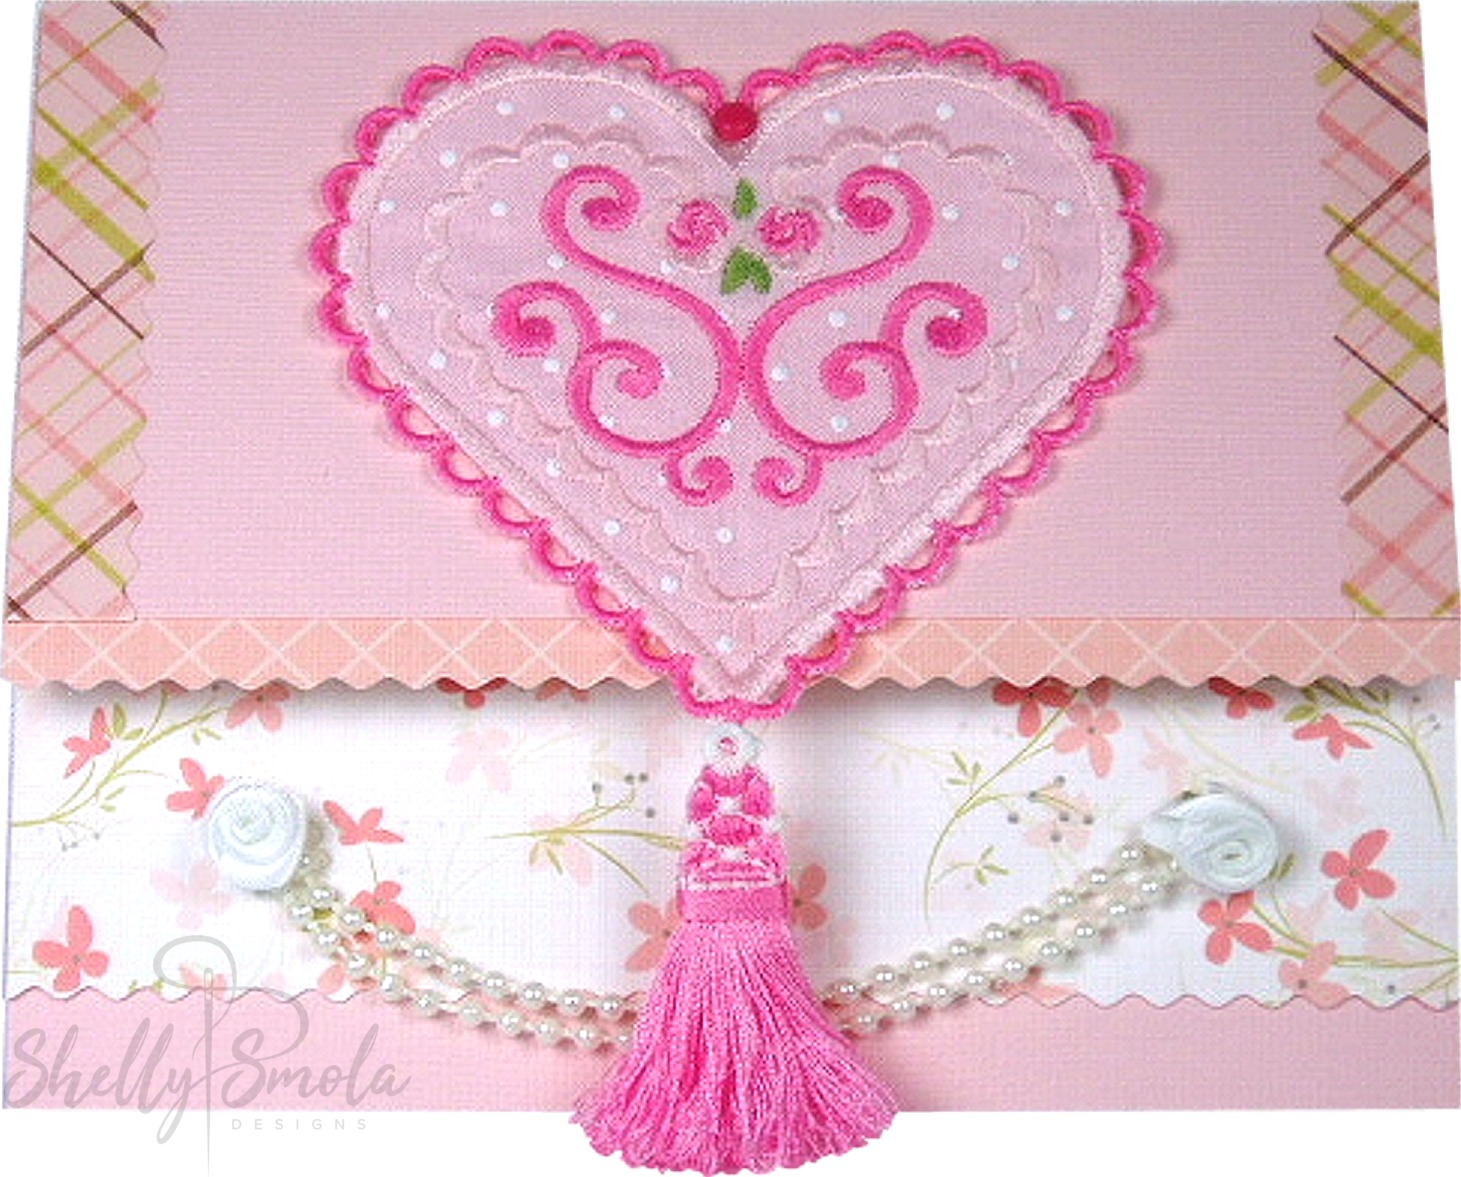 Sweetheart Applique Card by Shelly Smola